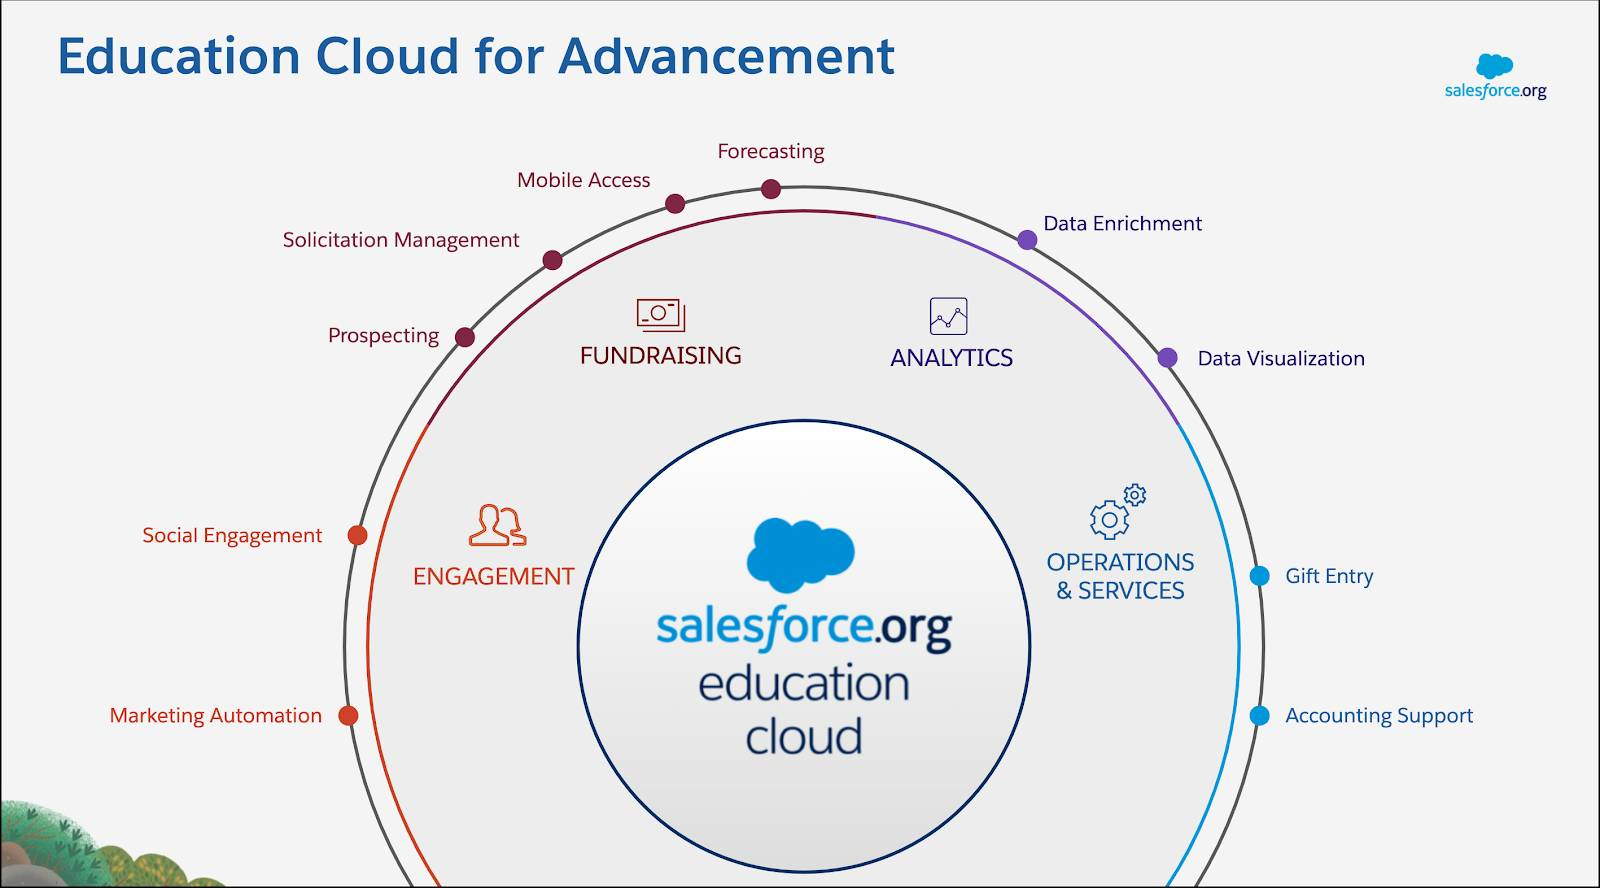 Education Cloud supports Advancement efforts with tools for Engagement, Fundraising, Analytics, and Operations & Services.